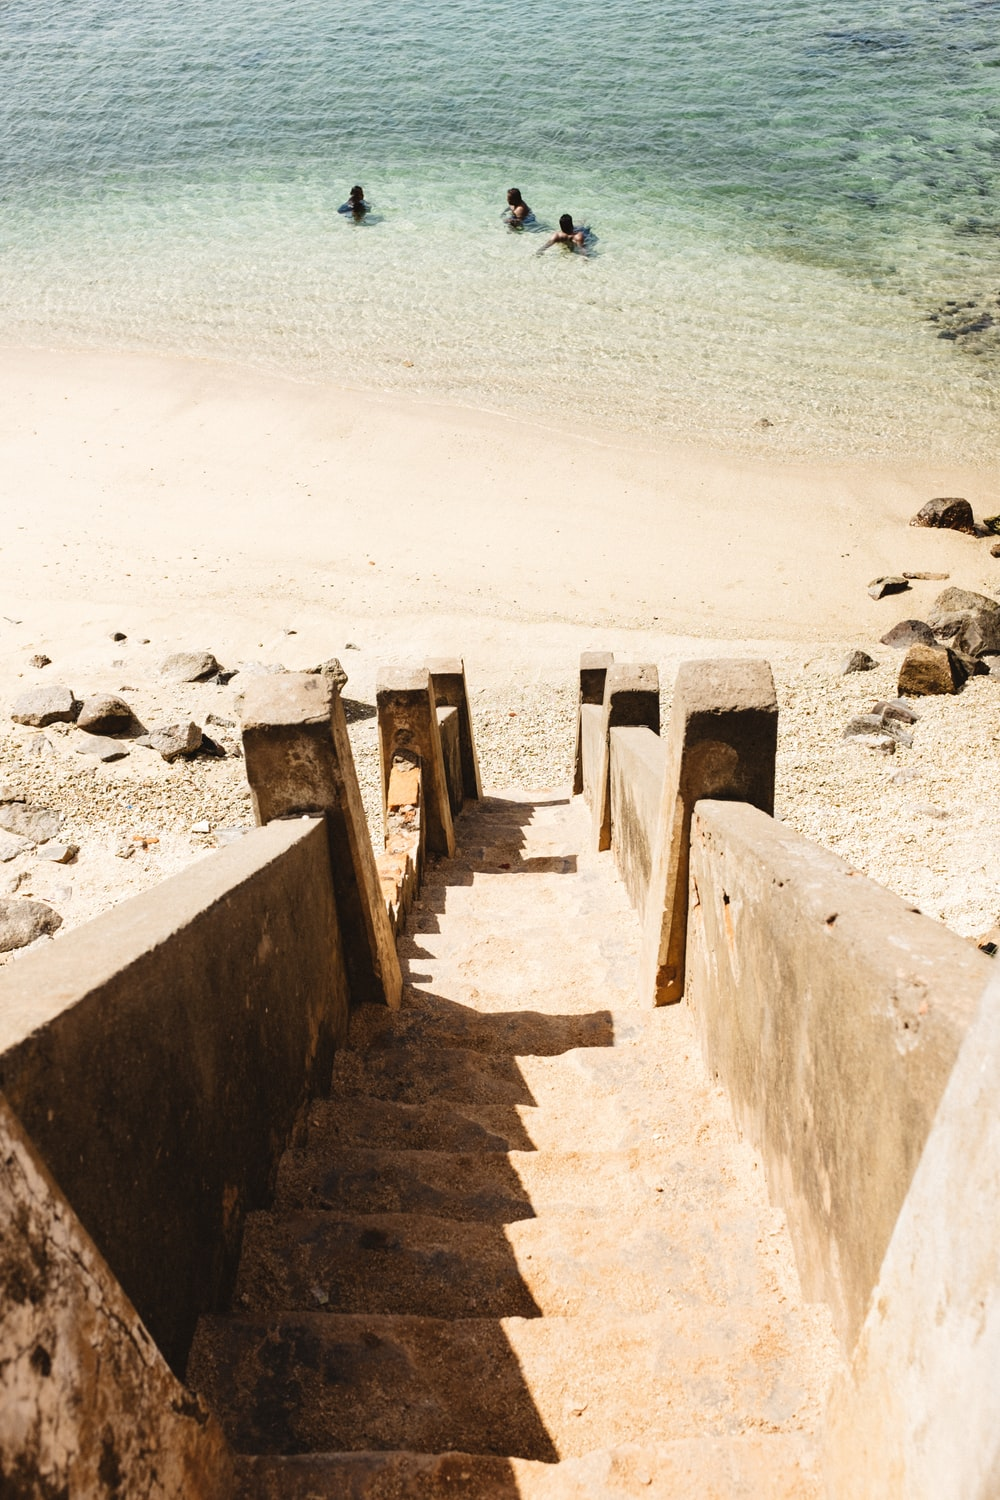 concrete stairs going to seashore